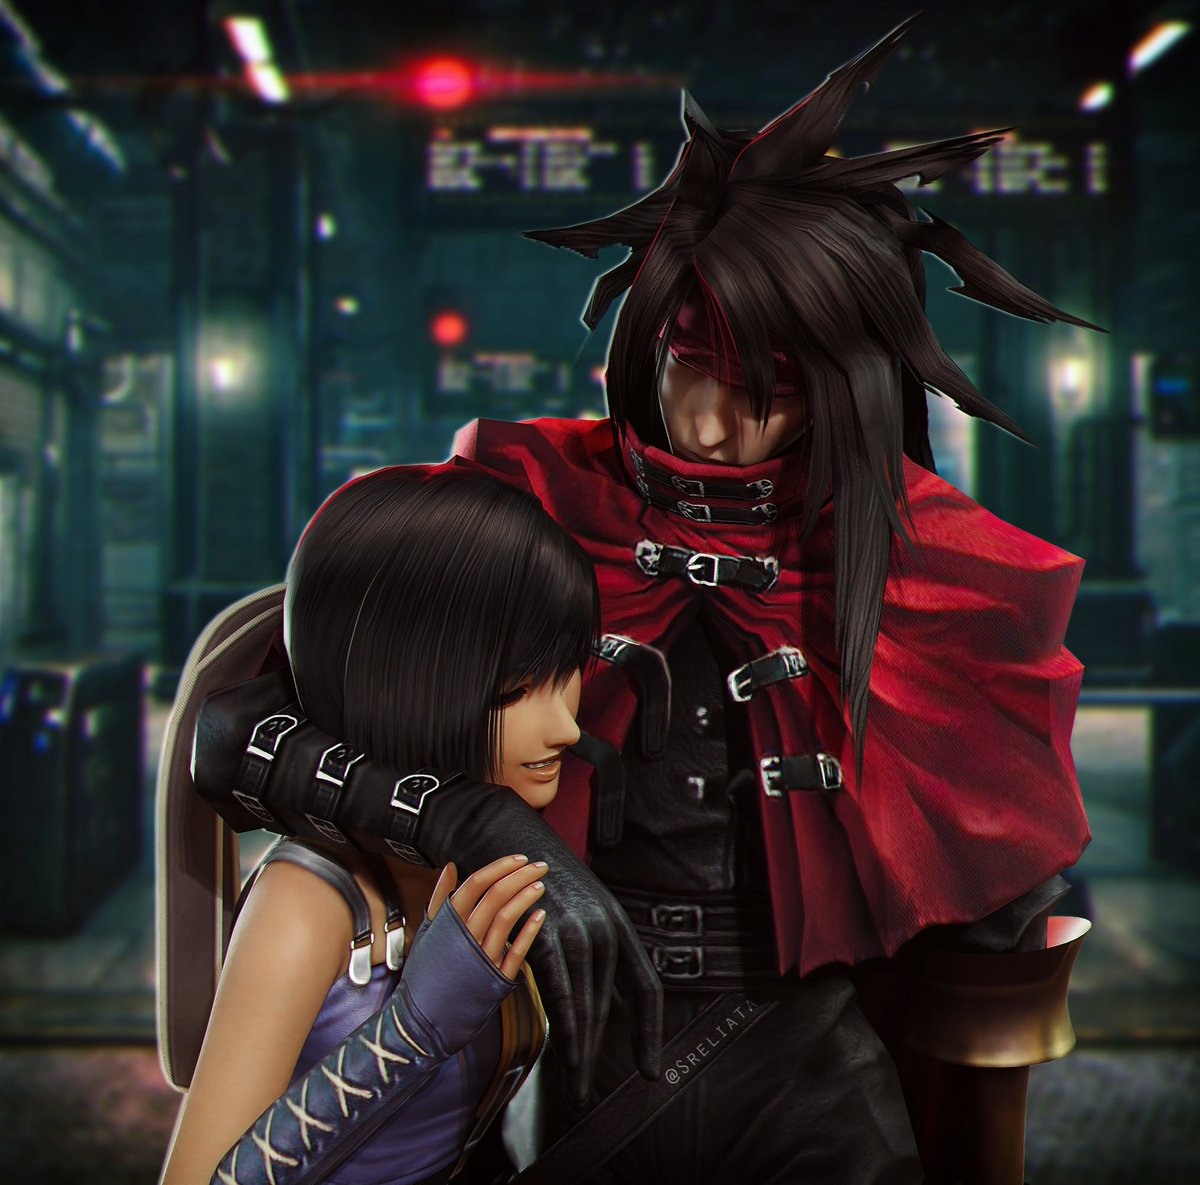 Always wanted to do something with #Vincent and #Yuffie from #FF7 #FFVII #FF7Remake and #DirgeOfCerberus !! I really can't wait for the remake and although we won't see them in part 1, I am looking forward to see them!  I hope you like it too.  Little bit at least. 🤭  #b3d #Love